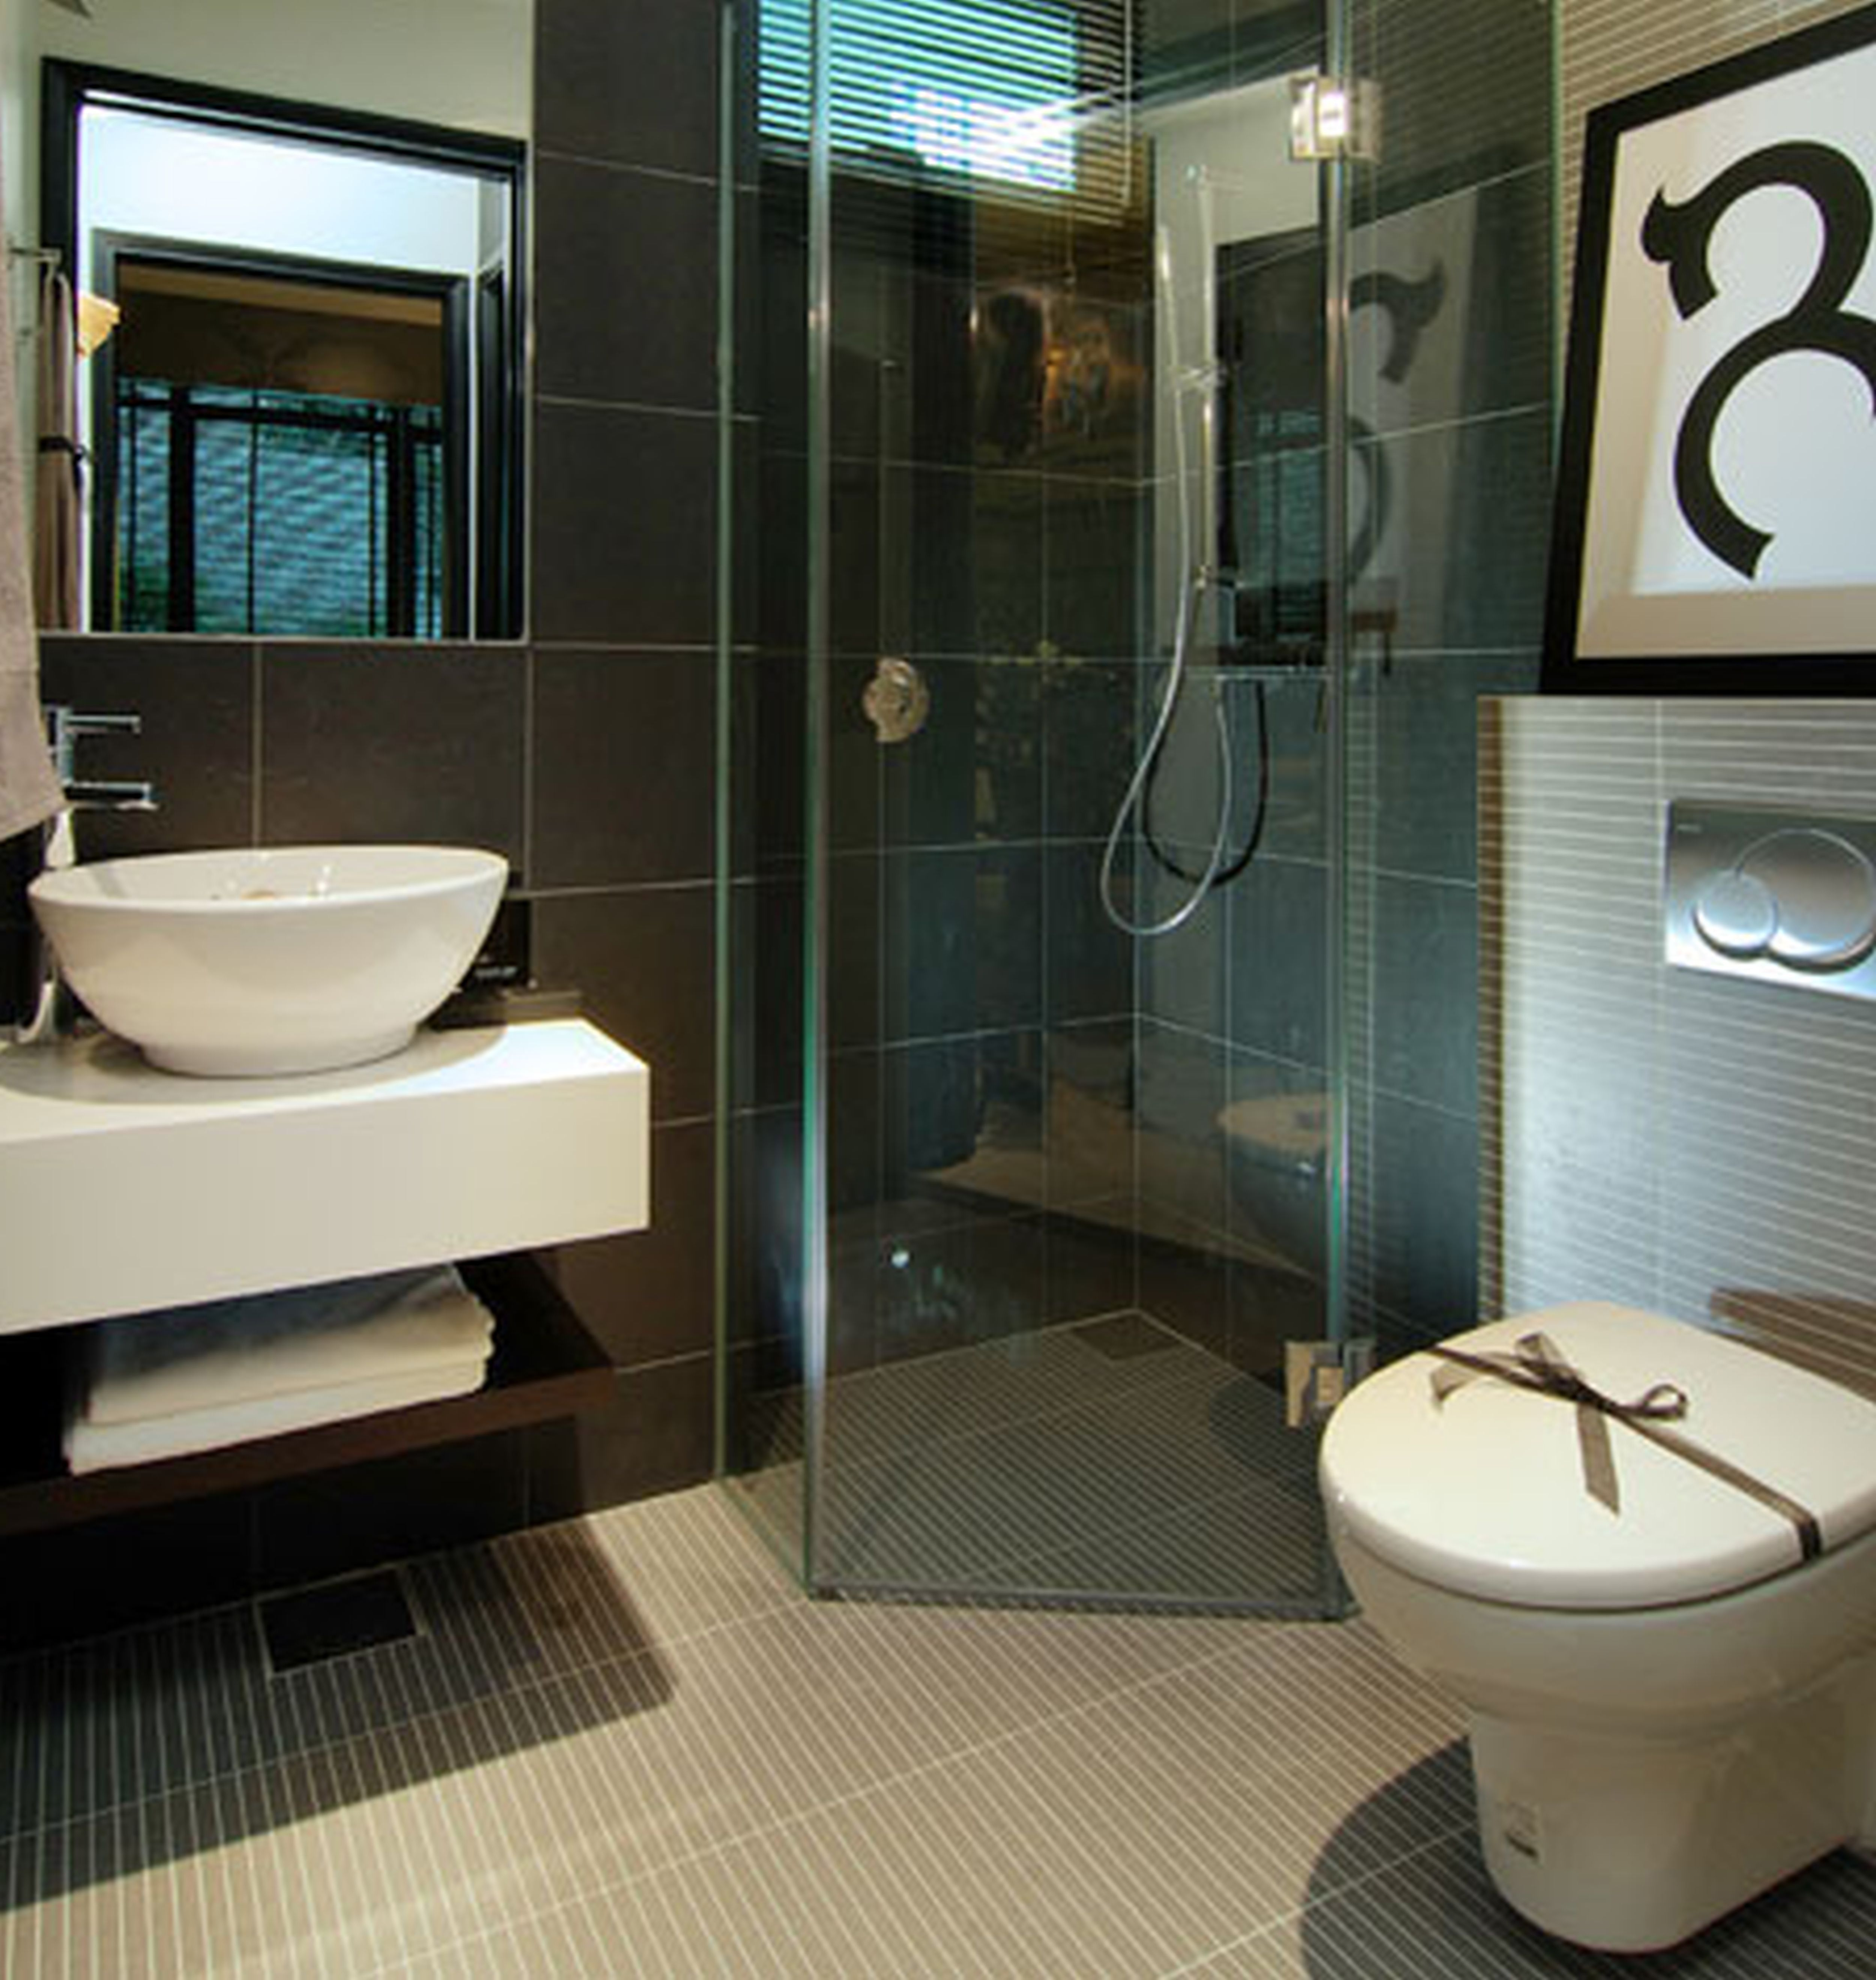 Image result for 2m x 2m bathroom design northview - Very small bathroom ideas ...